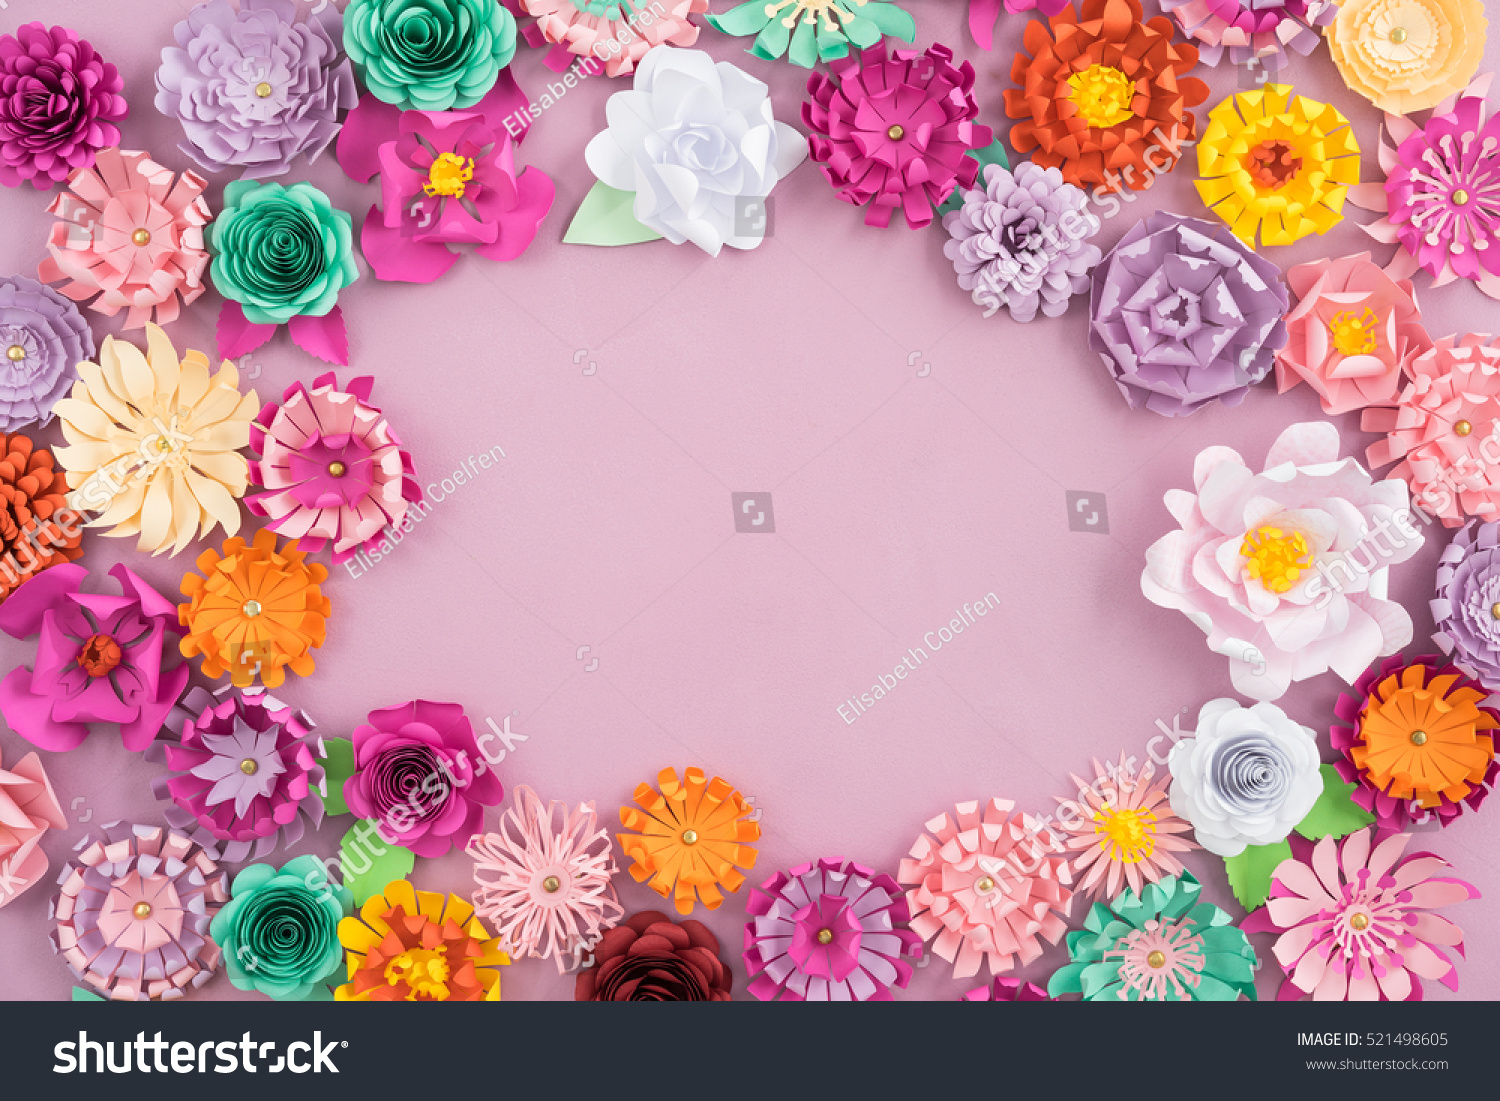 Colourful Handmade Paper Flowers On Pink Stock Photo Edit Now